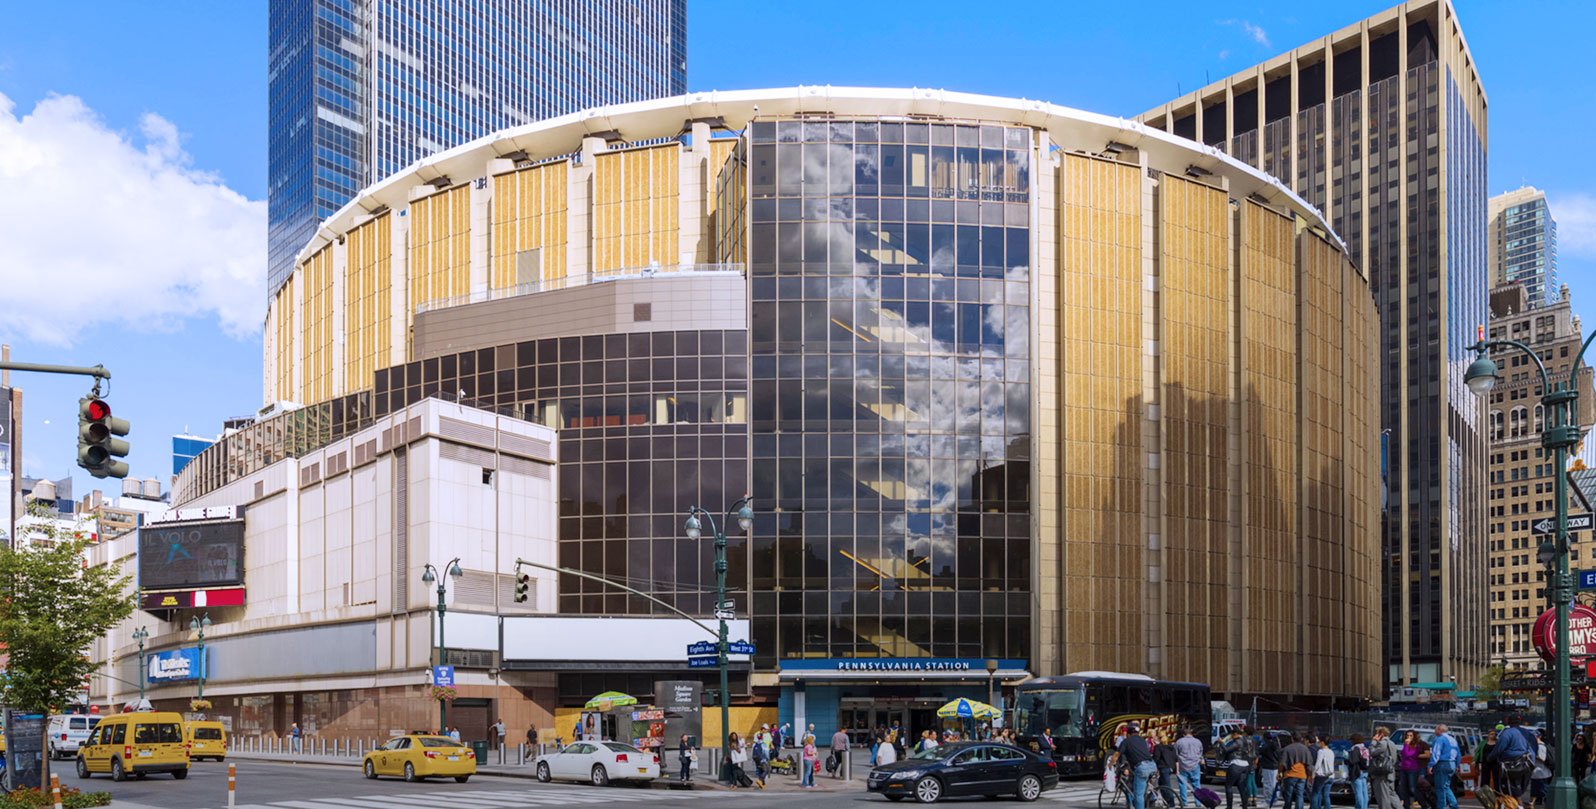 New York S Miserable Penn Station Is Finally Getting A Revamp The Spaces